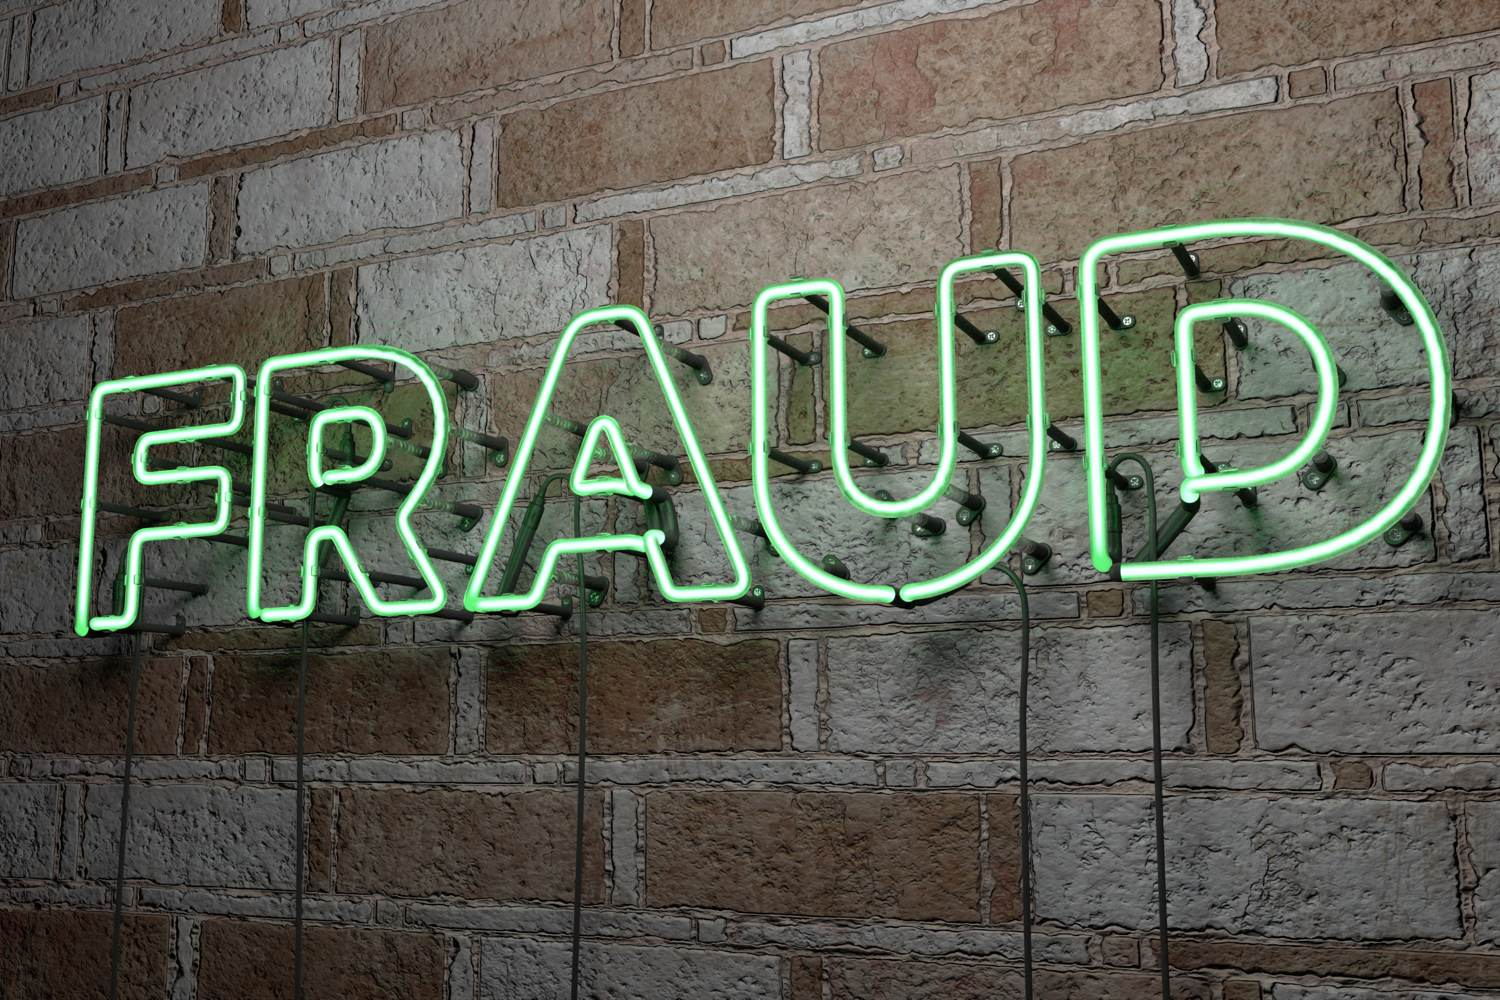 Fraud in green neon light on bare brick wall